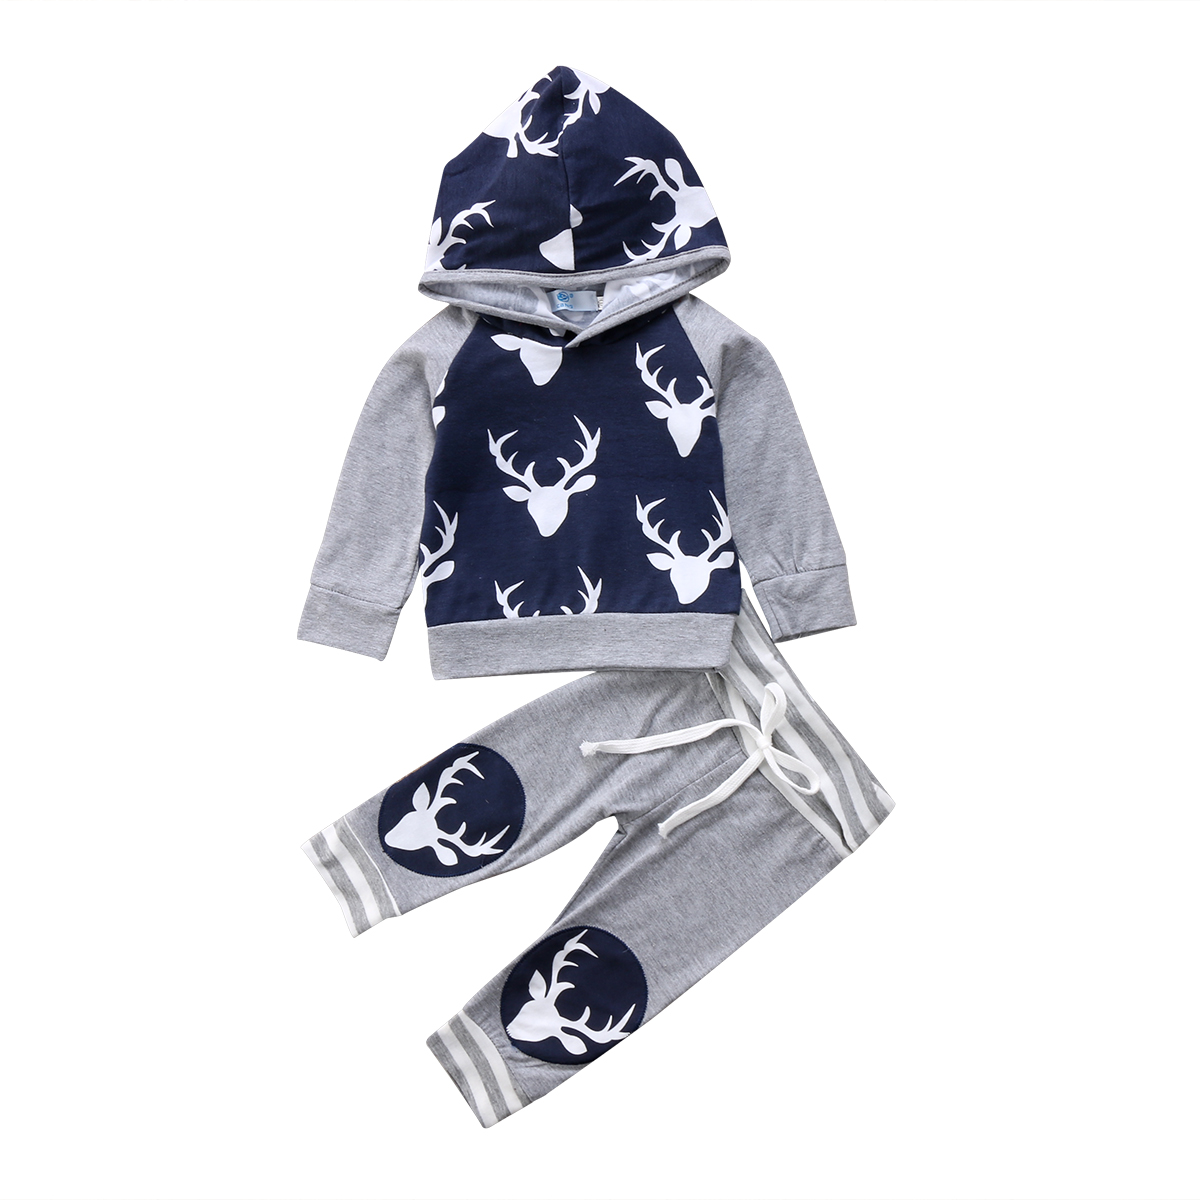 2Pcs Newborn Toddler Baby Boys Clothes Set Cotton Casual Clothing Deer Hooded Tops Long Pants Legging Outfits Set Clothes 0-24M